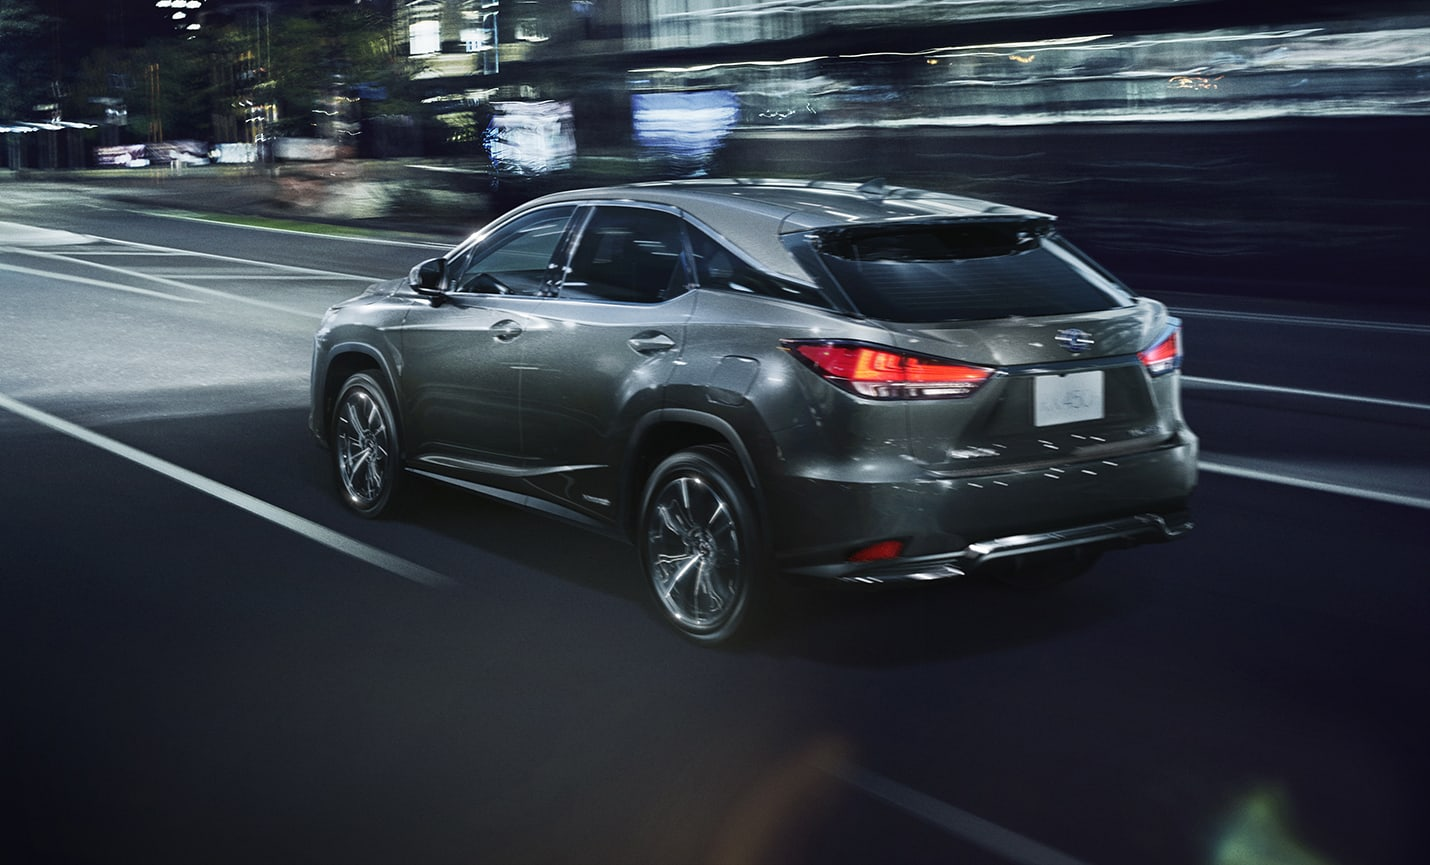 2020 Lexus Rx Pricing And Specs More Tech Revised Ride Sharper Entry Caradvice